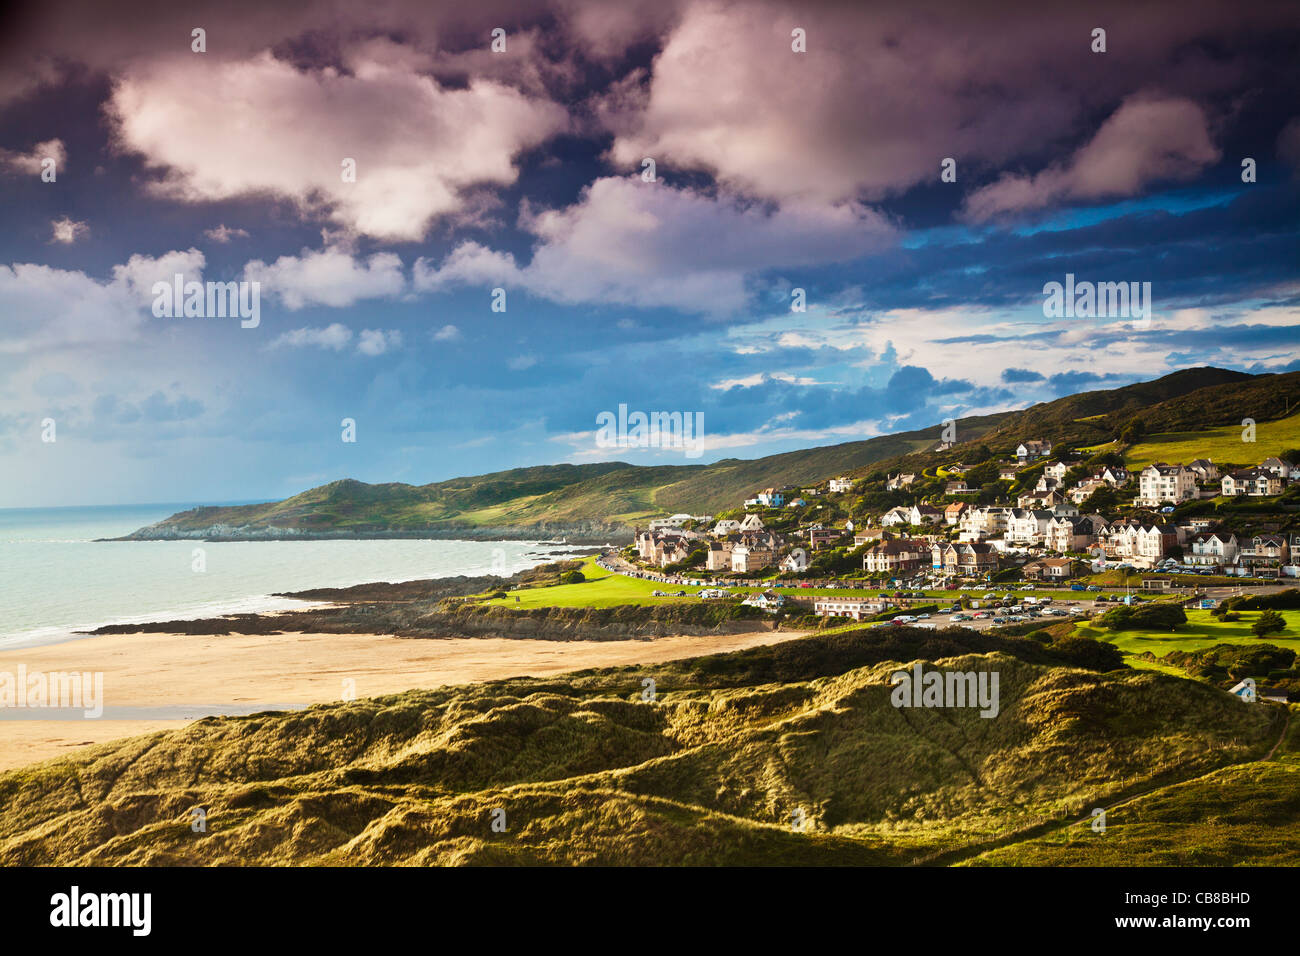 Evening light falls on the English coastal resort town of Woolacombe in Devon, England, UK with Morte Point in the - Stock Image